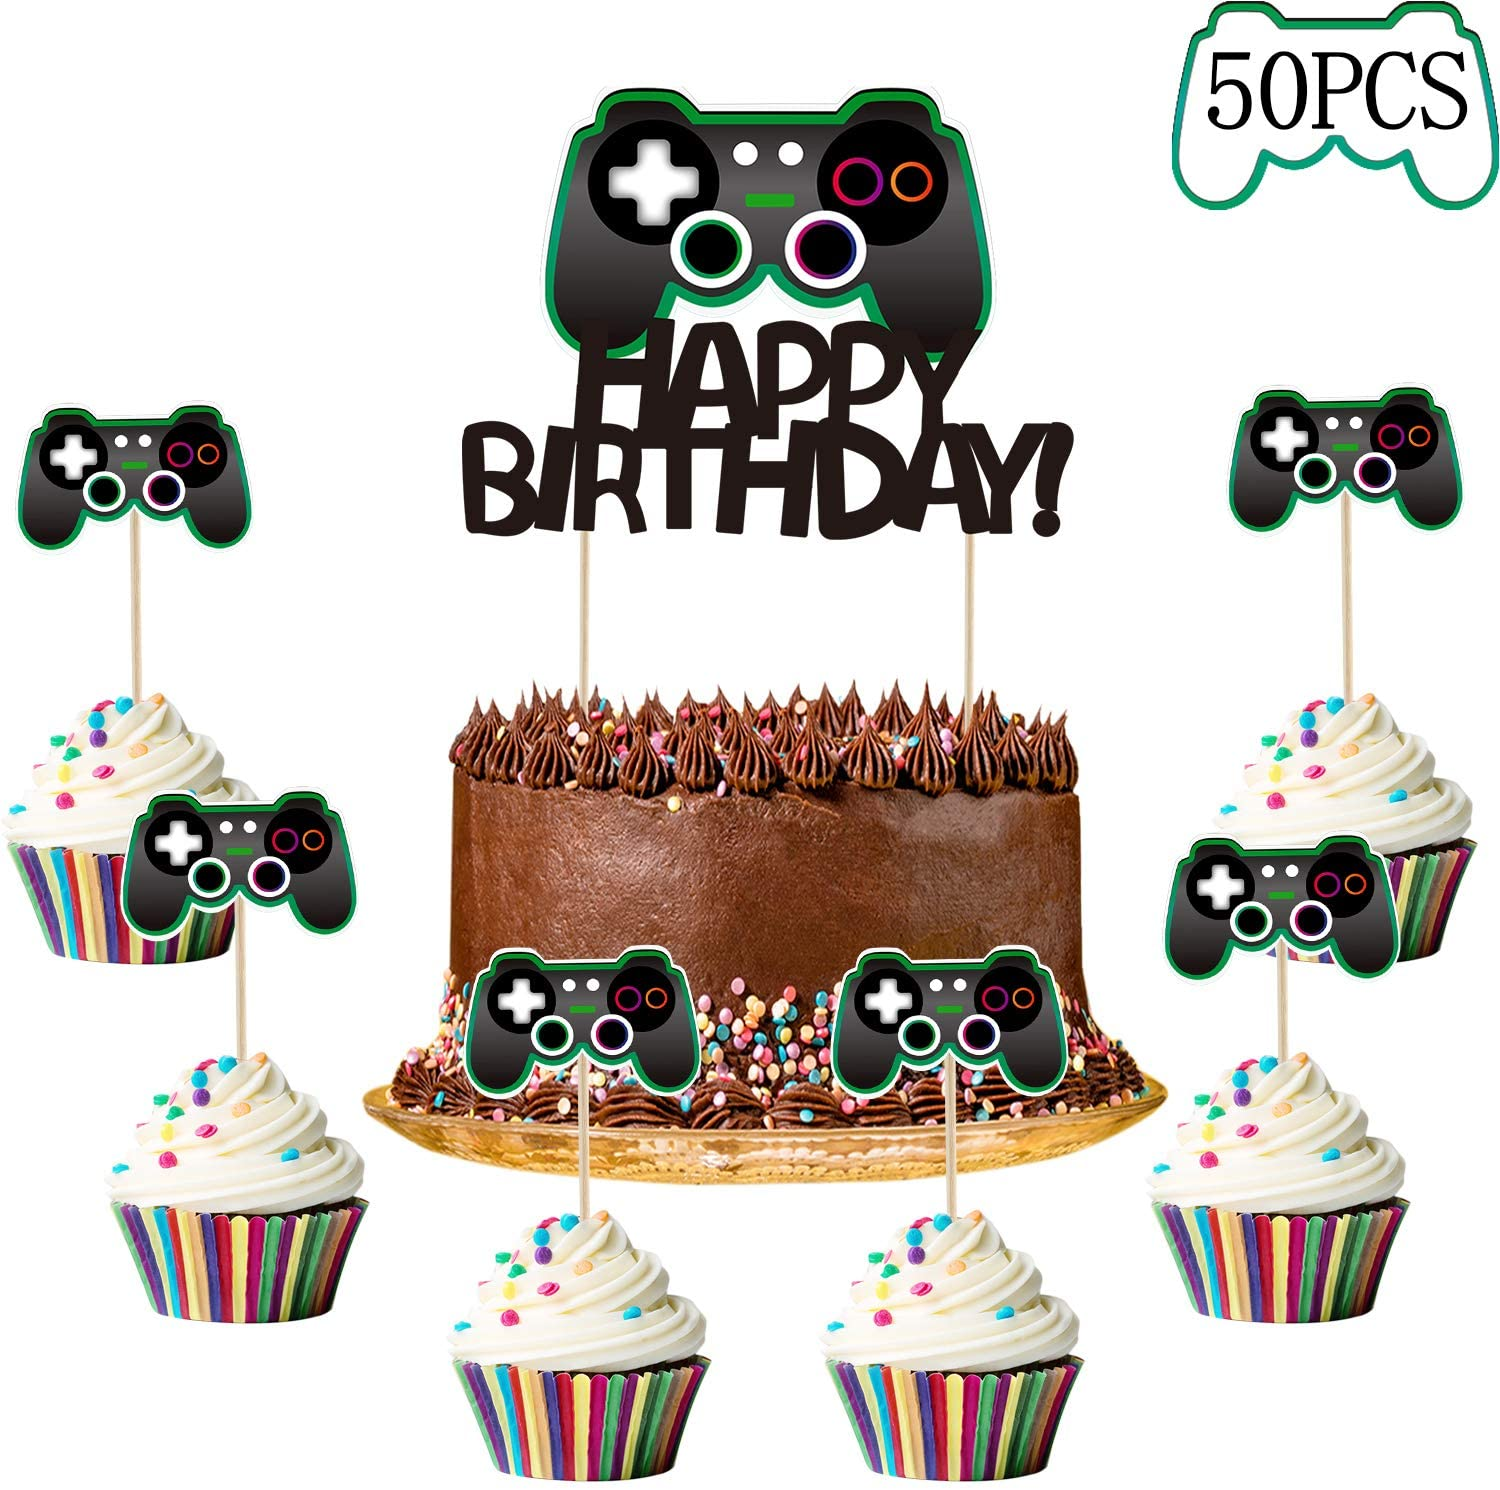 50 Pieces Video Game Cake Toppers Gaming Cupcake Toppers Gamer Cake Decorations Set Video Game Controllers Cake Toppers Happy Birthday Cake Decorations Picks For Kids Gaming Themed Birthday Walmart Com Walmart Com